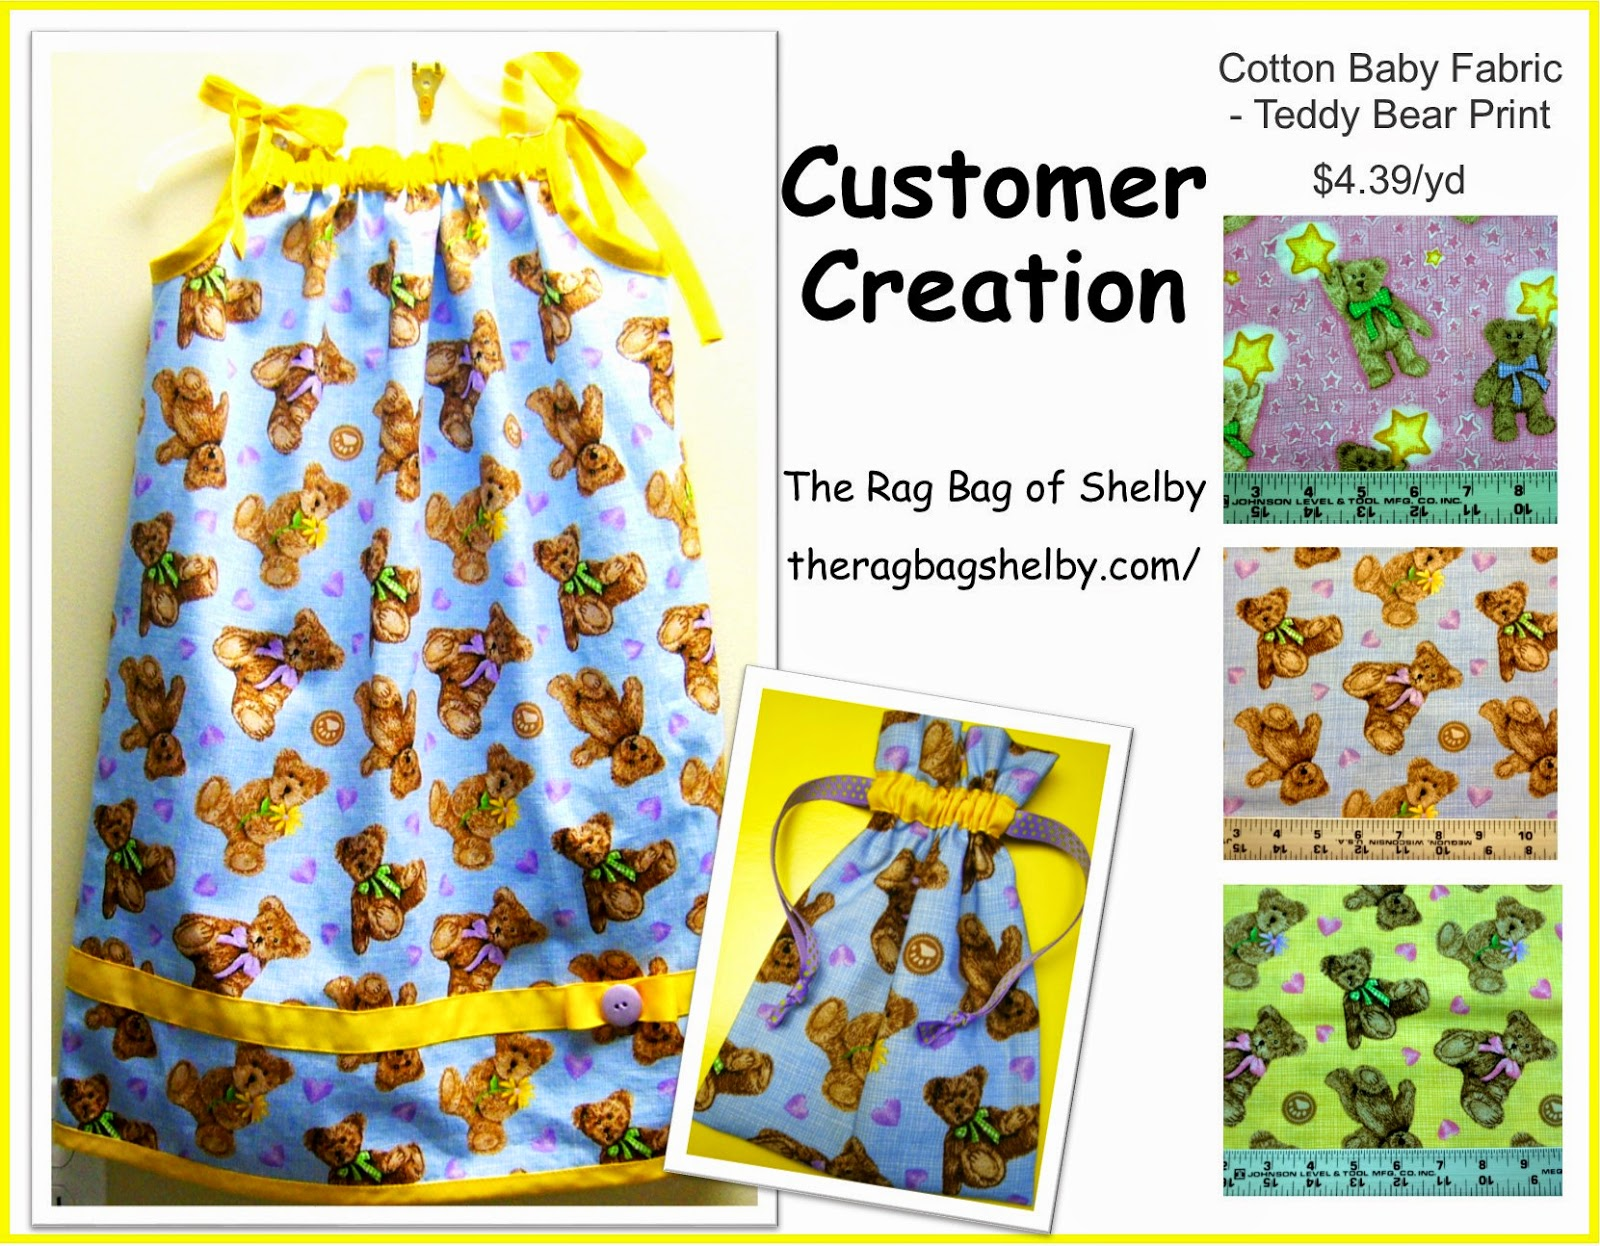 The Rag Bag of Shelby Teddy Bear Fabric